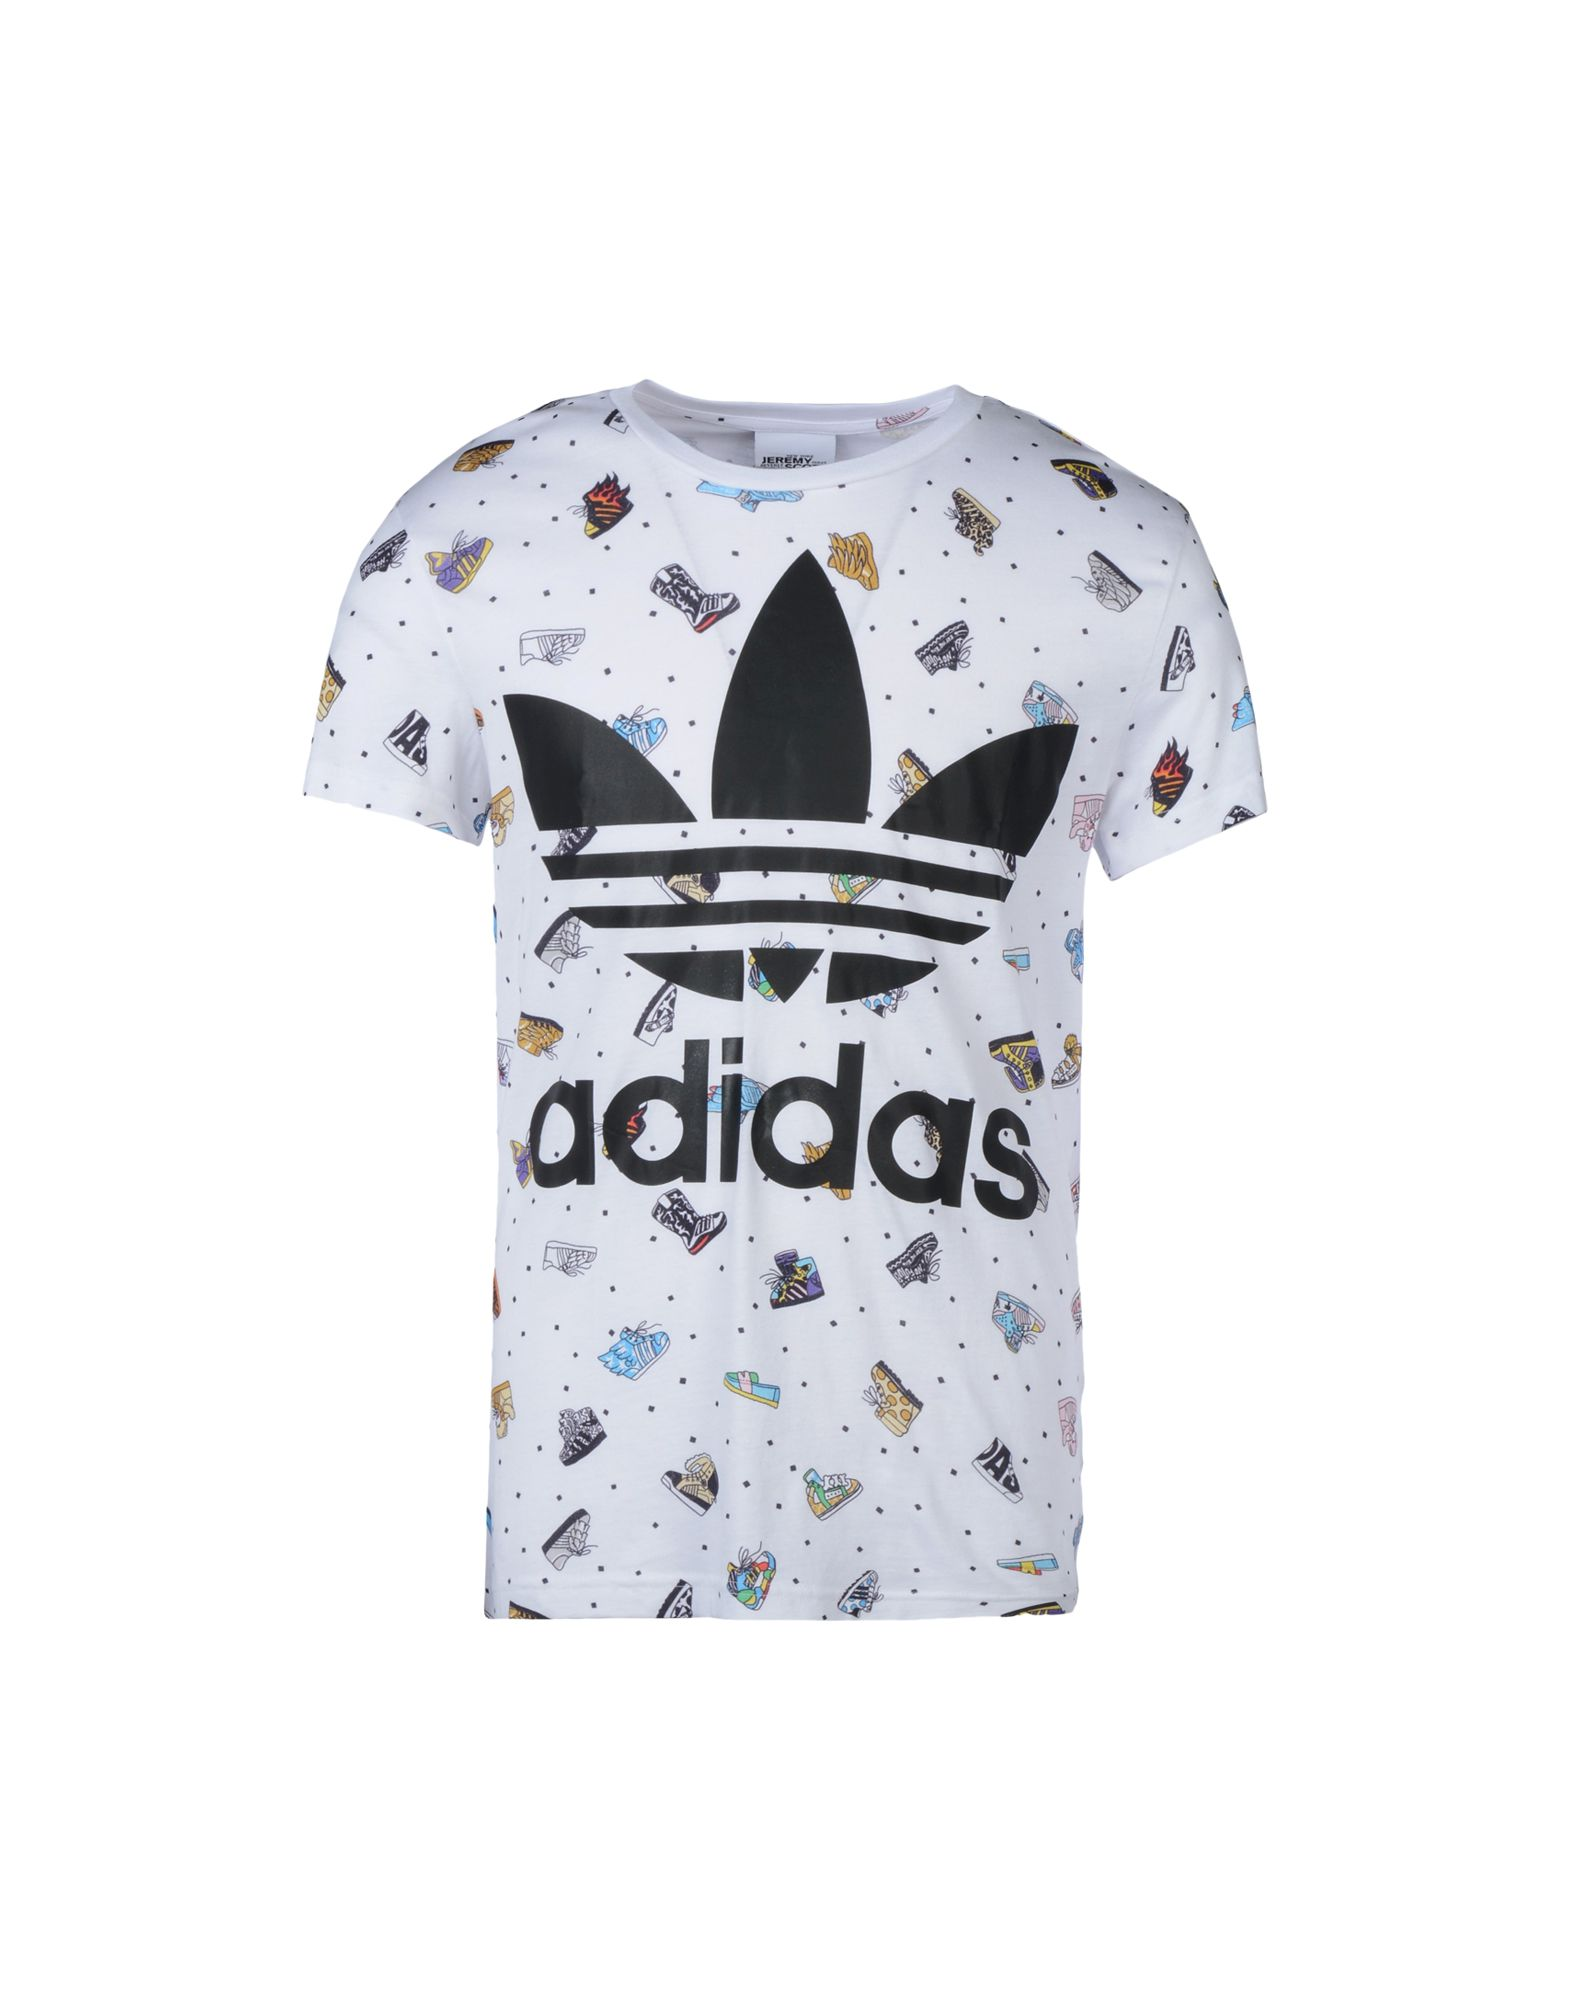 ADIDAS ORIGINALS by JEREMY SCOTT Футболка adidas originals by jeremy scott низкие кеды и кроссовки